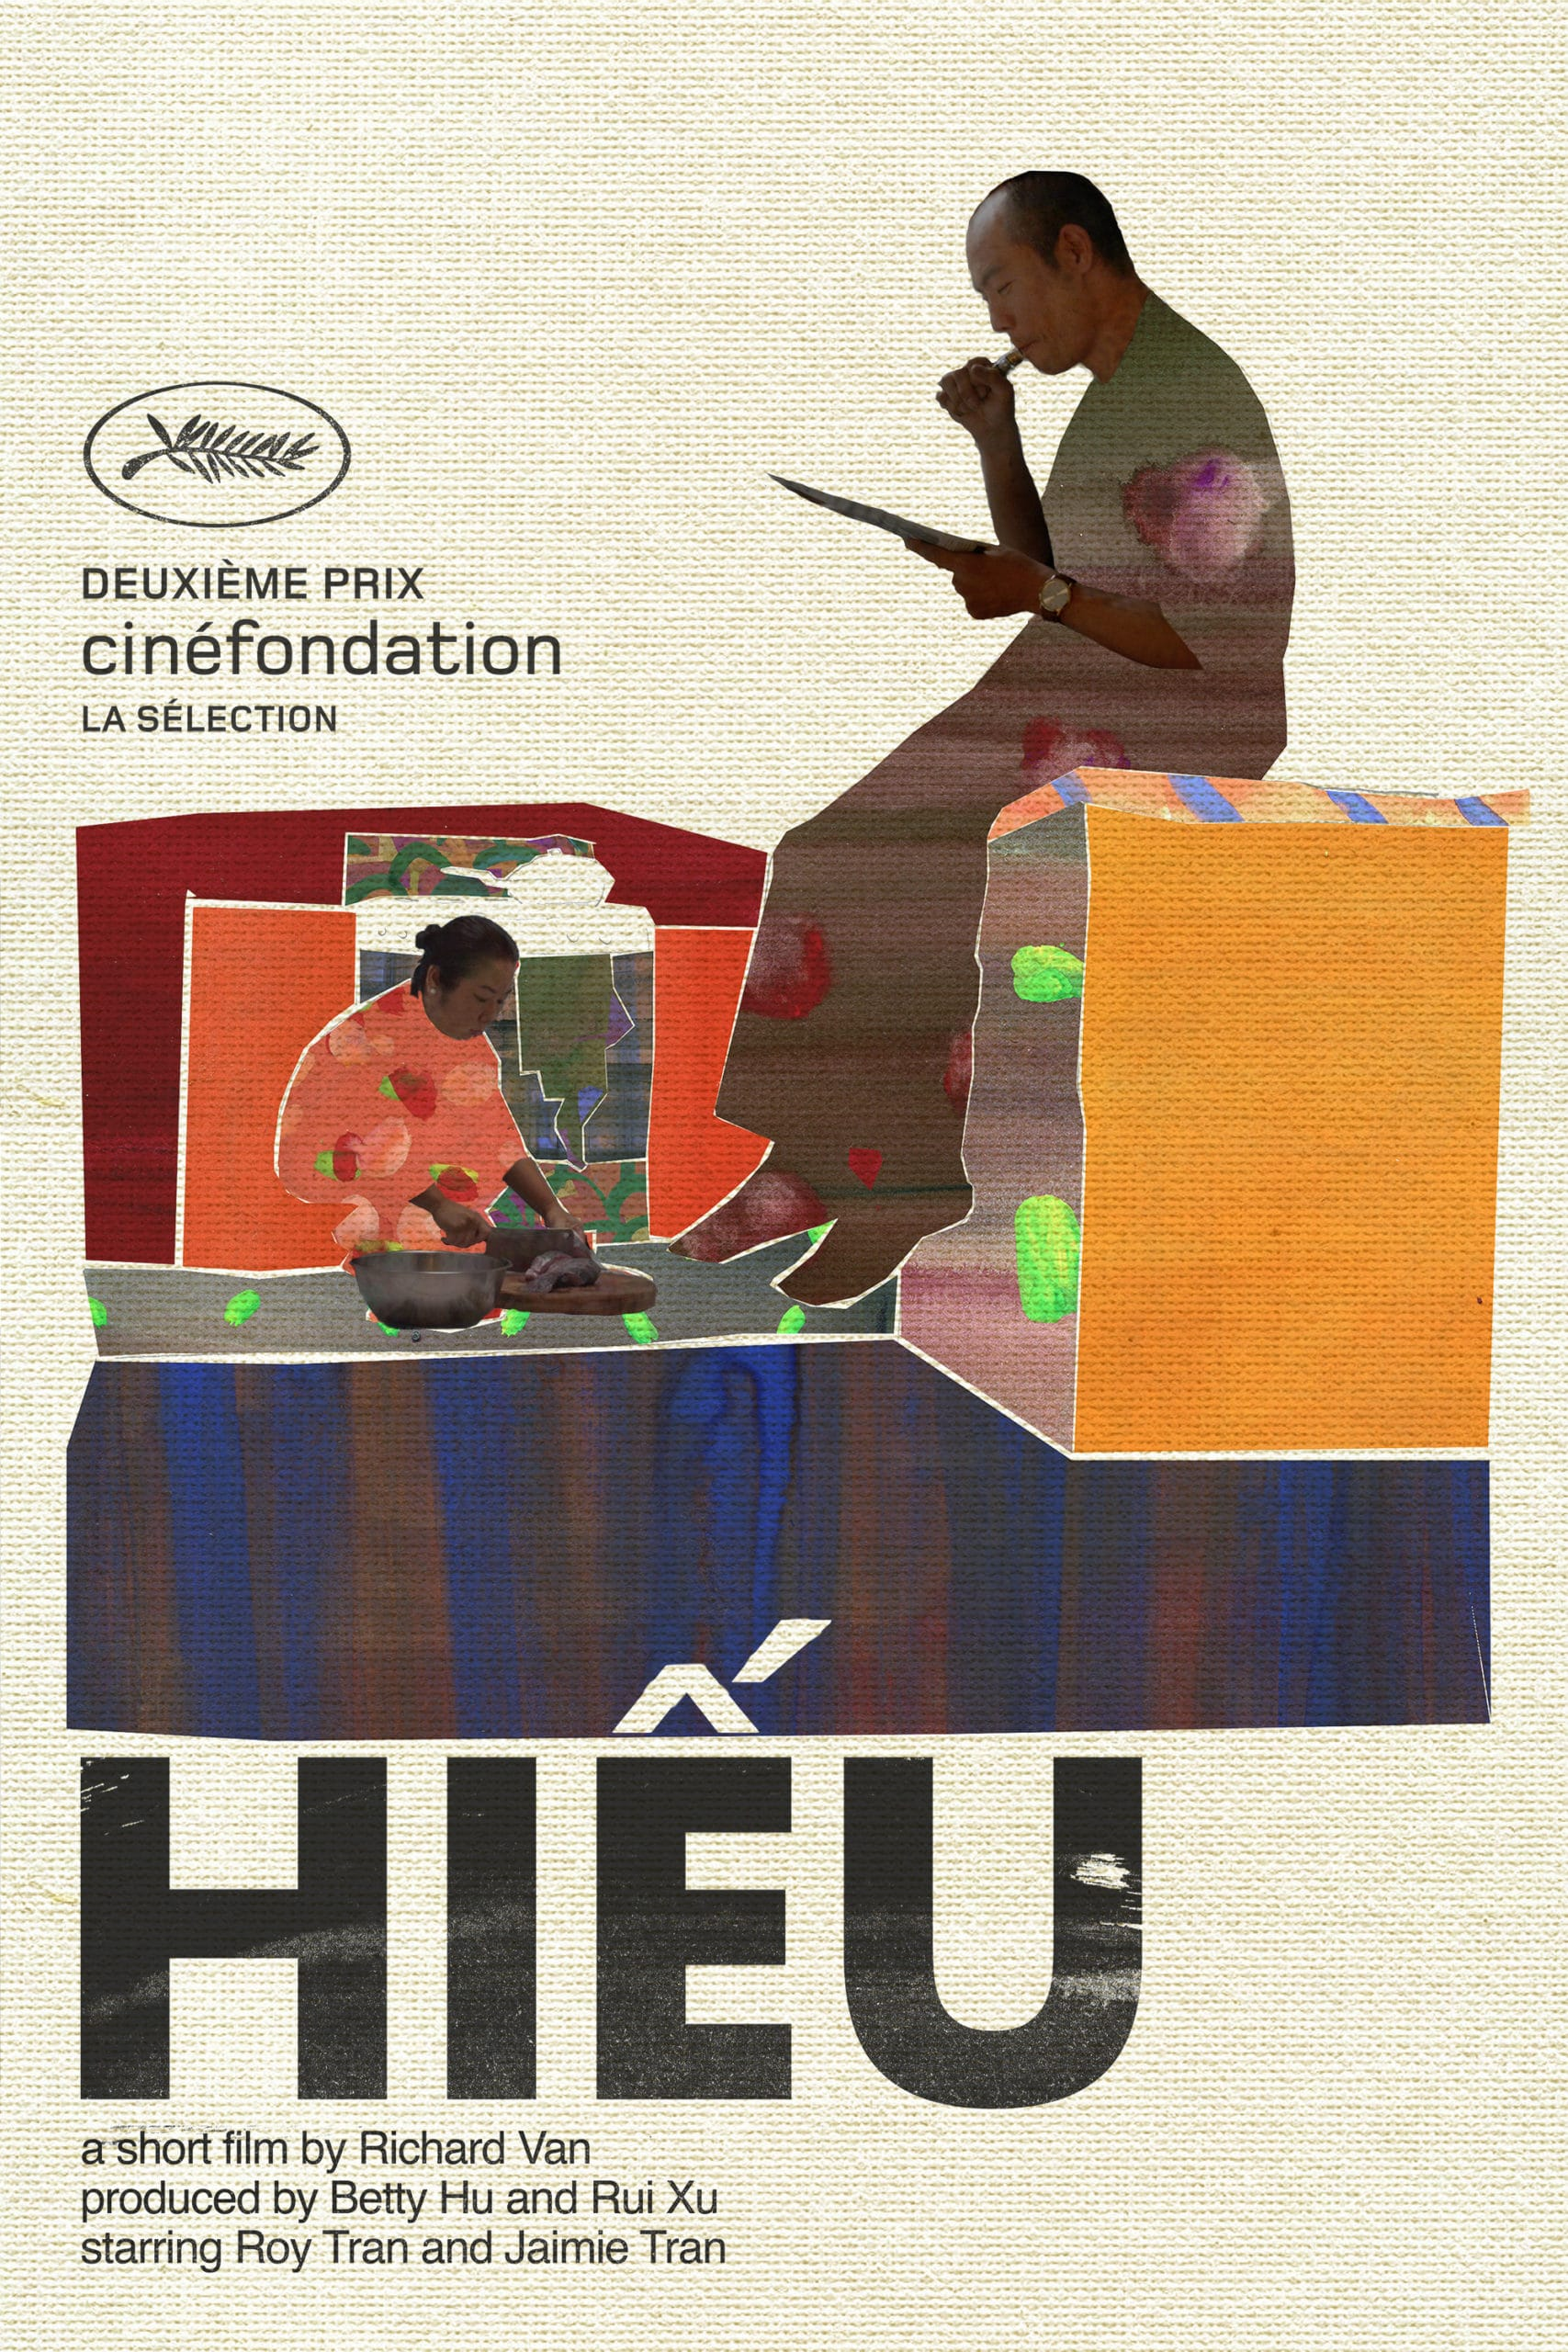 The Poster of the Film Hieu